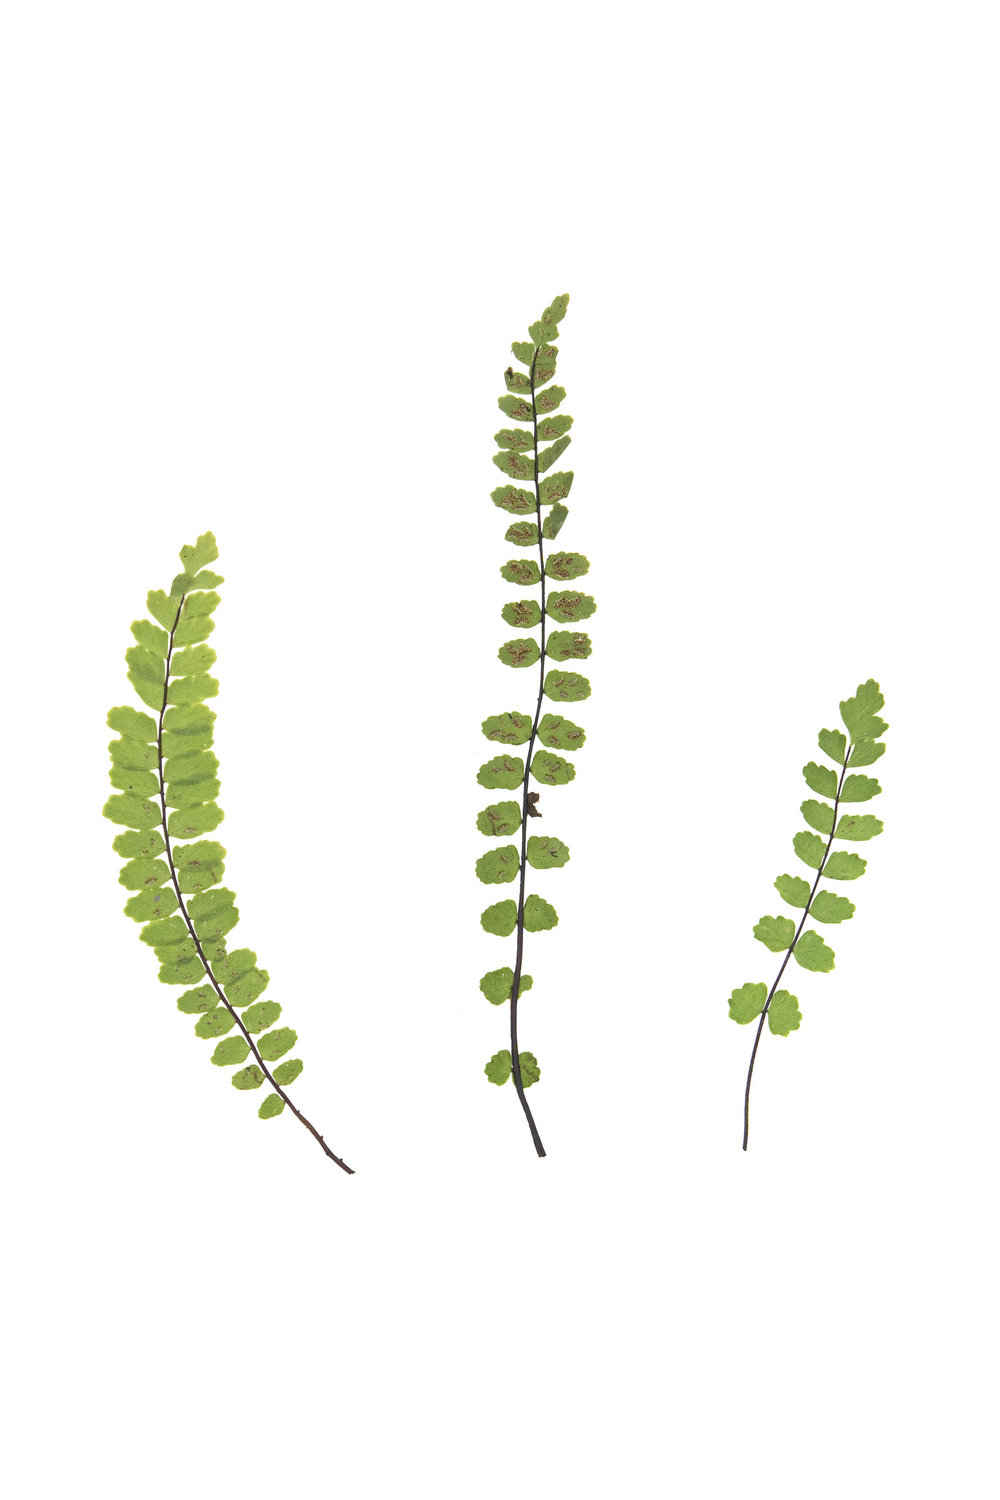 New! Asplenium trichomanes / Maidenhair Spleenwort